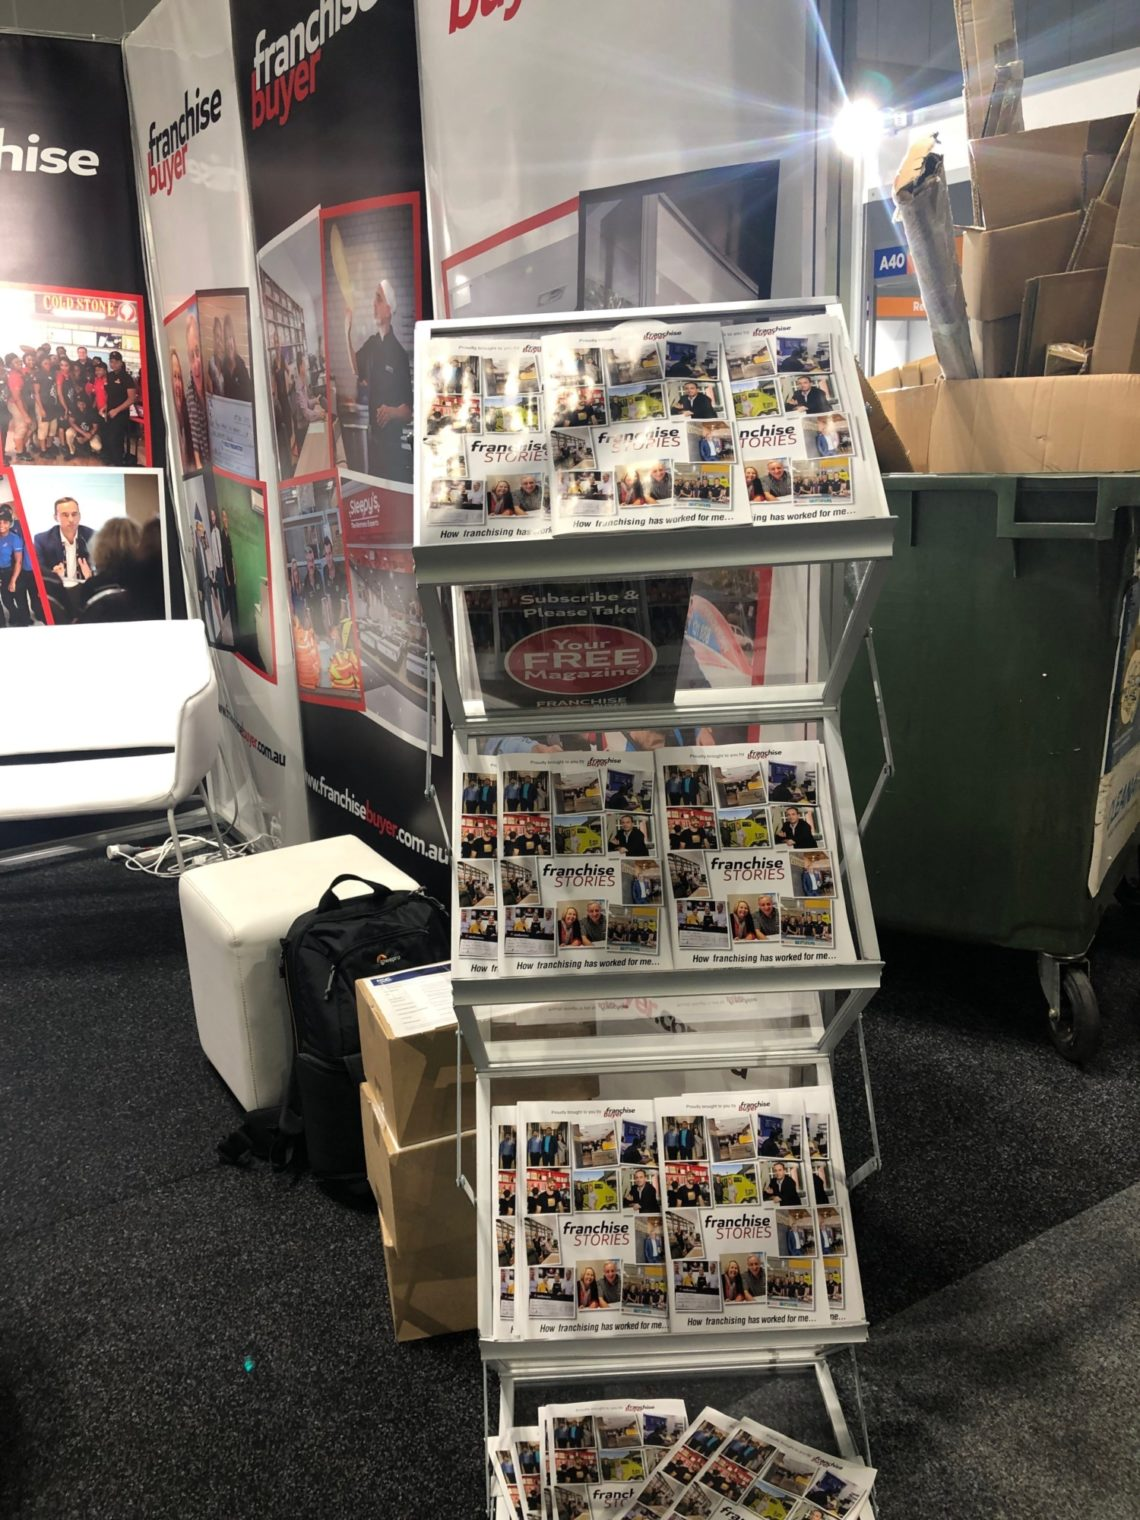 12 15 Opinion Franchise Stories Publication Sydney Expo Booth 2019 Image 4